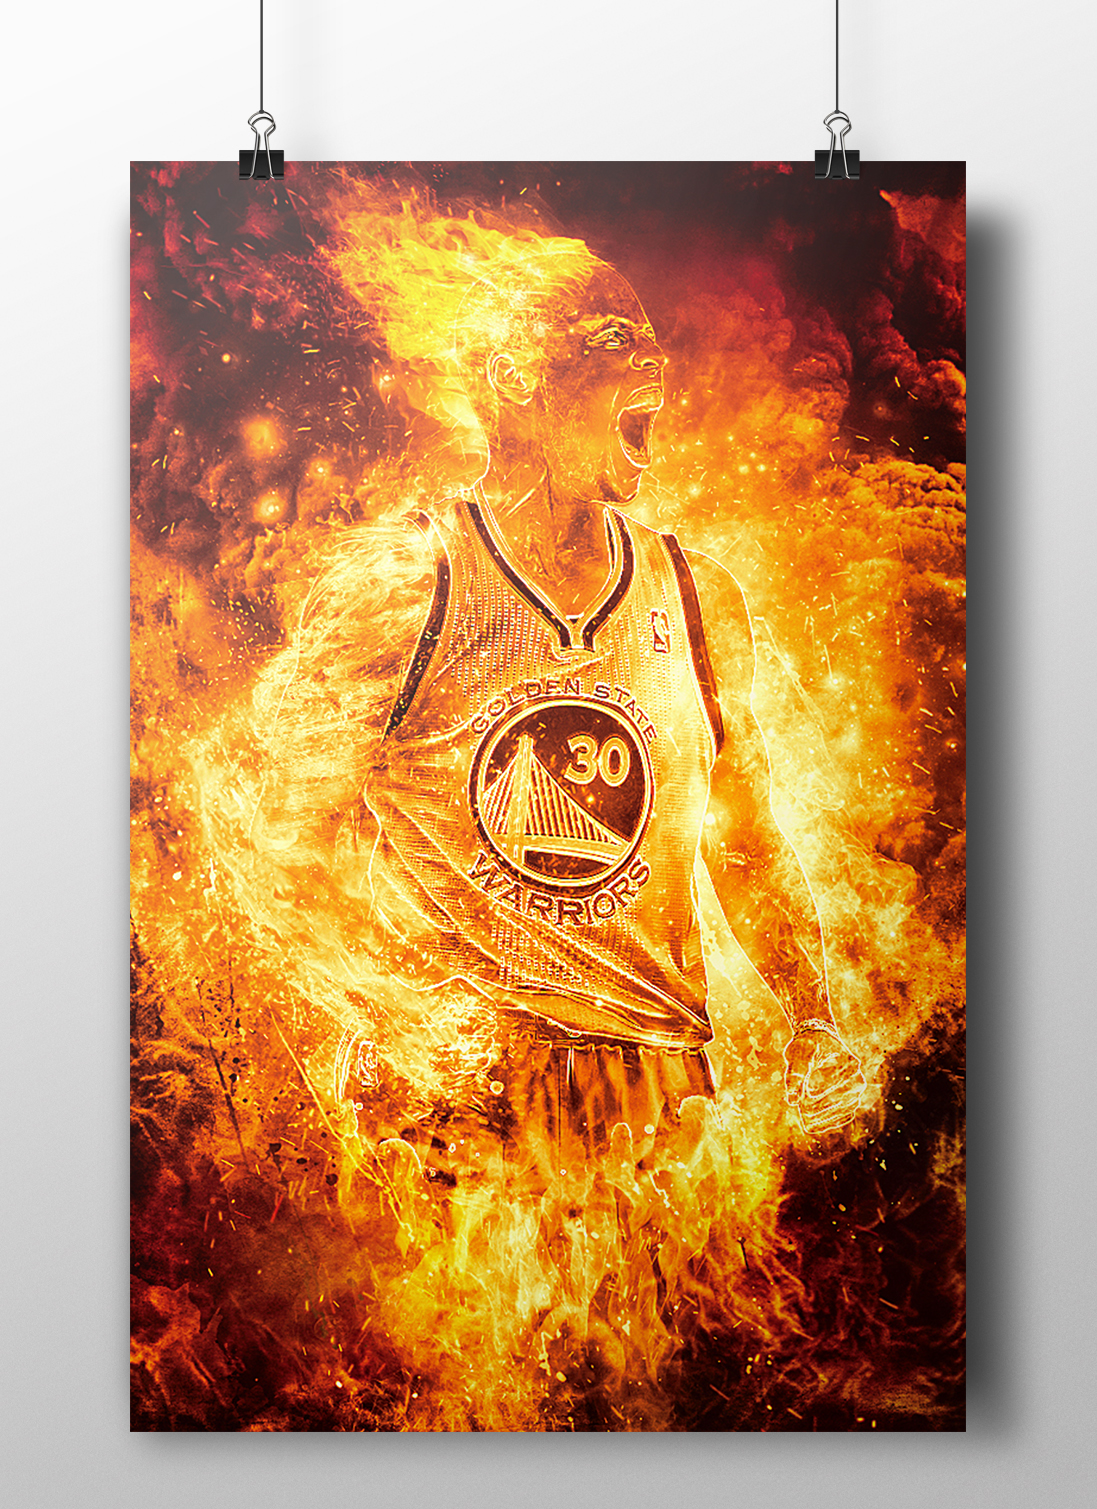 Steph Curry - Human Torch on Behance